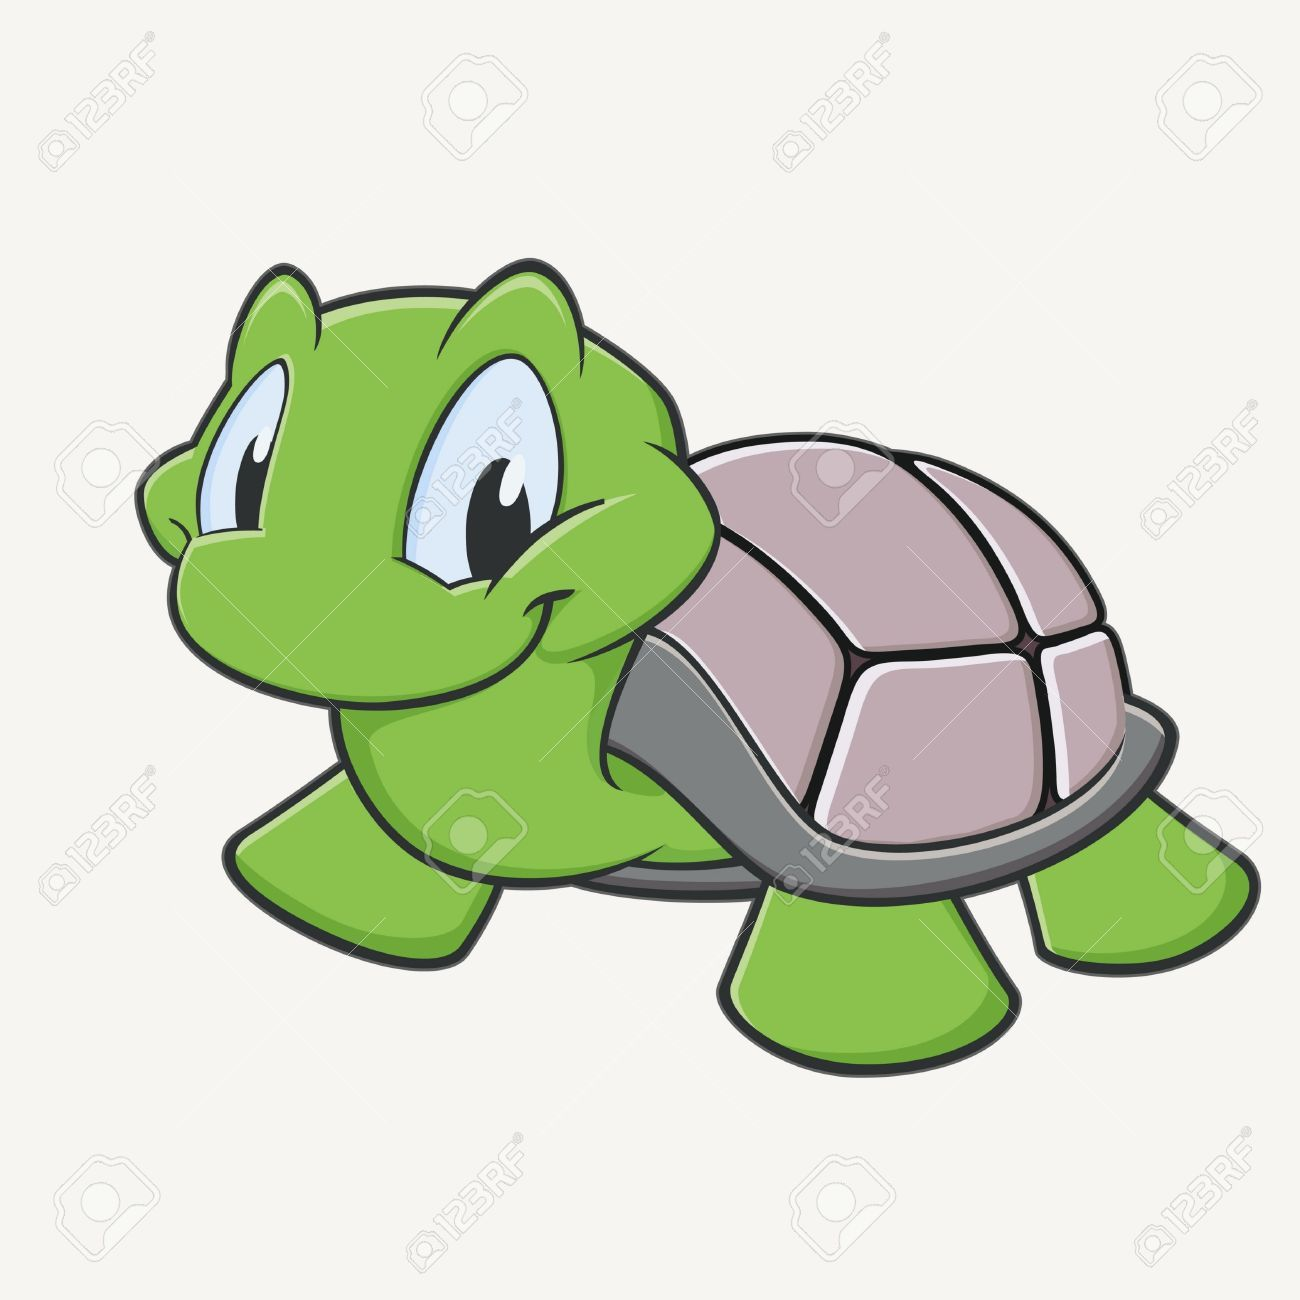 Vector Illustration Of A Cutely Smiling Cartoon Turtle